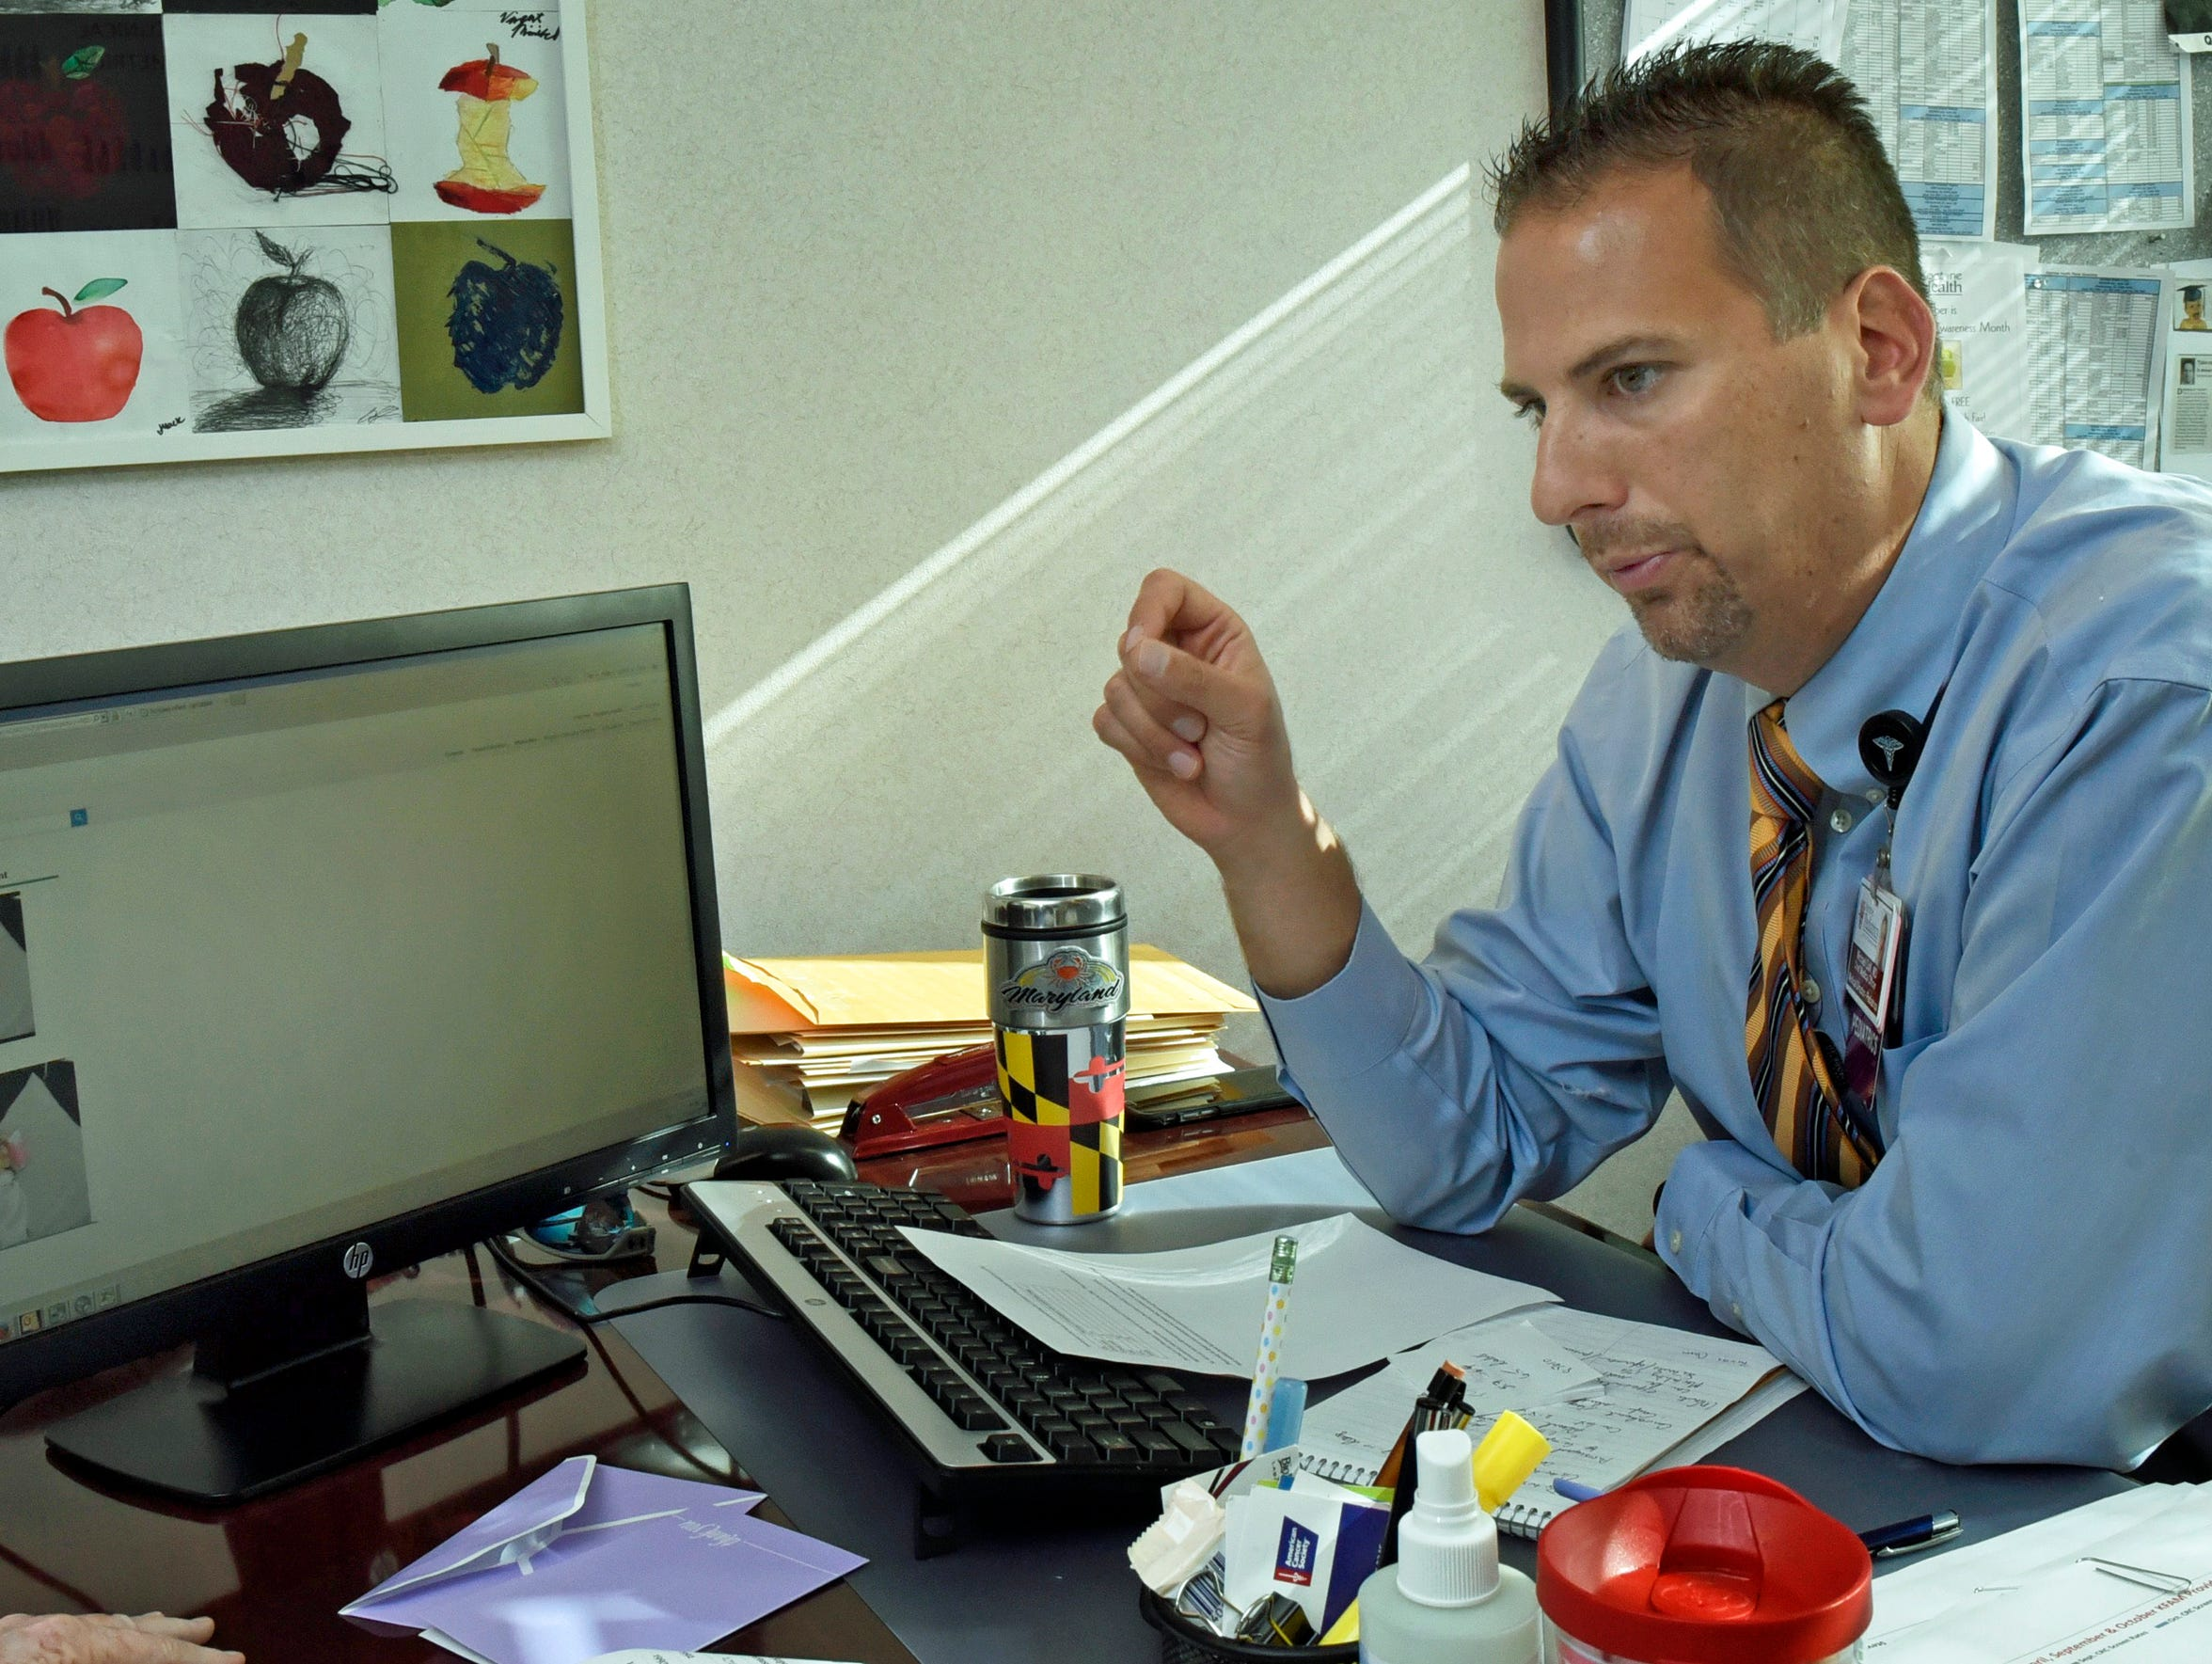 Dr. Michael Colli, pictured in his Chambesburg office